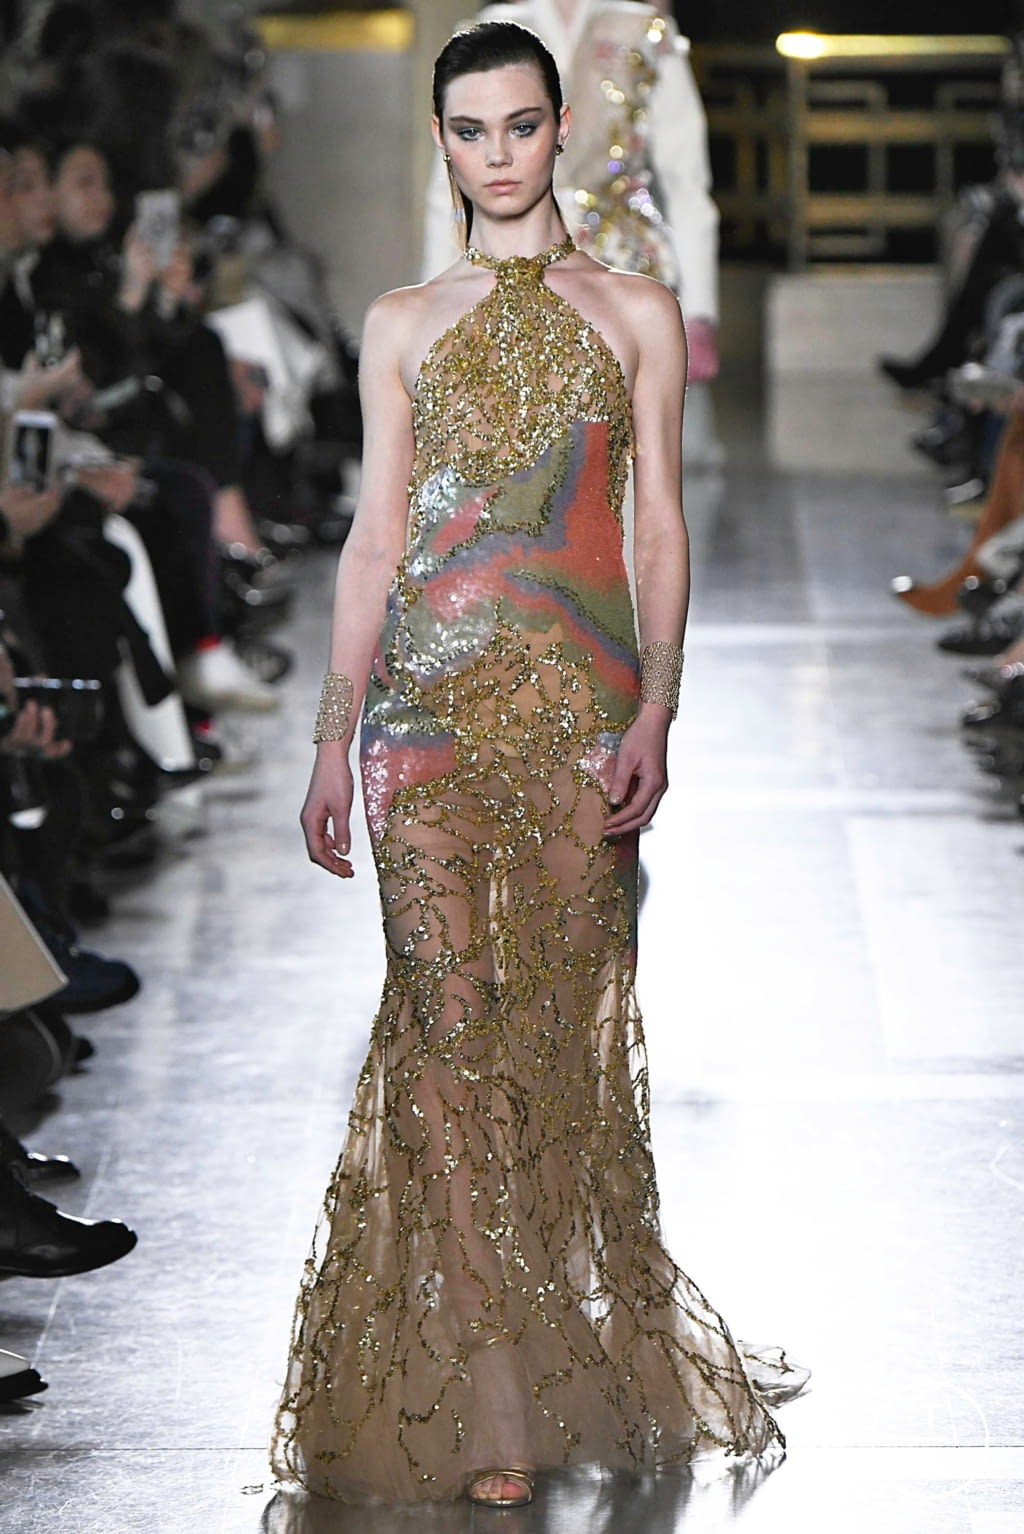 Fashion Week Paris Spring/Summer 2019 look 33 from the Elie Saab collection 高级定制